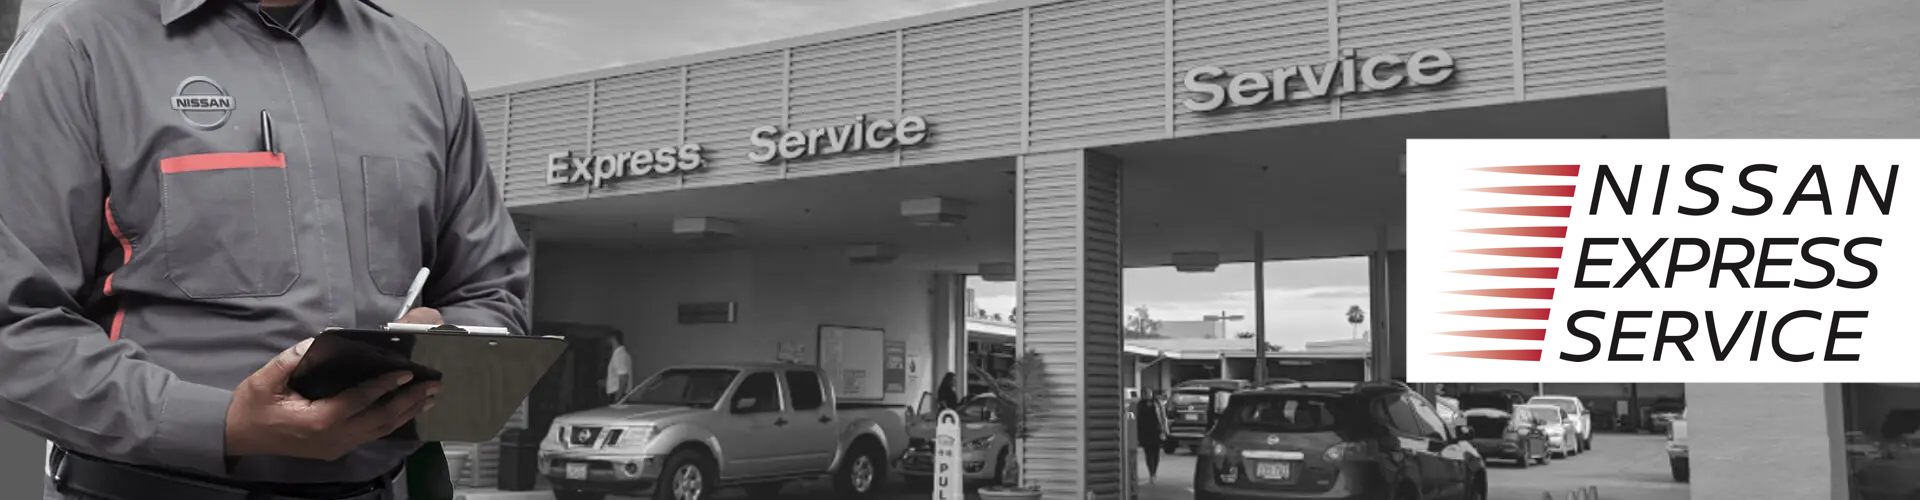 Nissan of Tustin Express Service Department